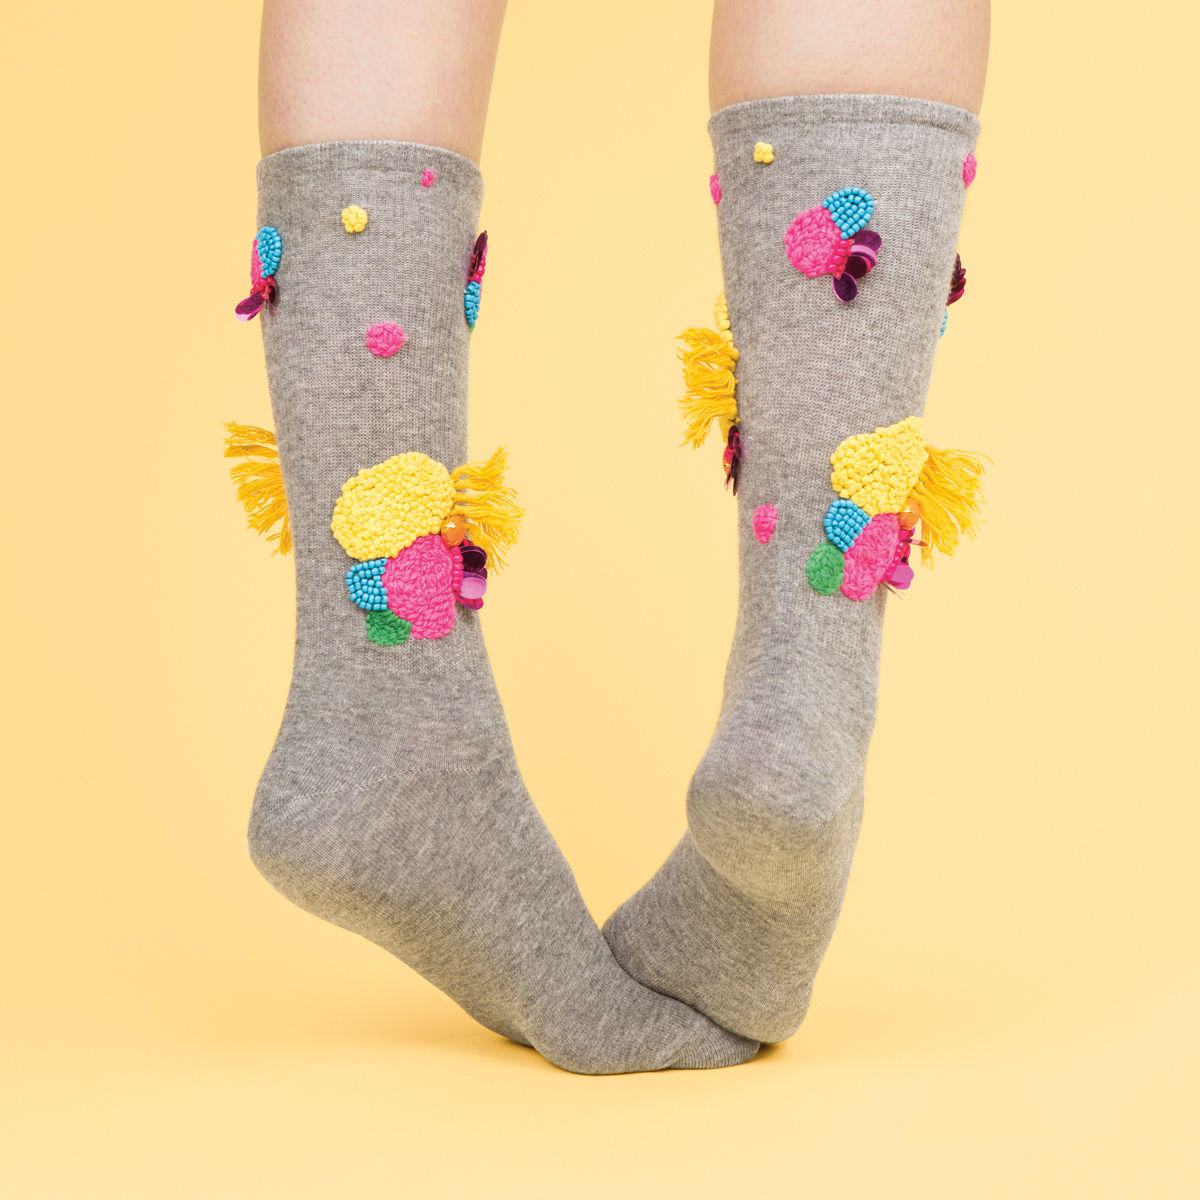 FrankieMag must-have socks colorful fantasy http://weirdatheart.com/absolutely-must-have-socks/